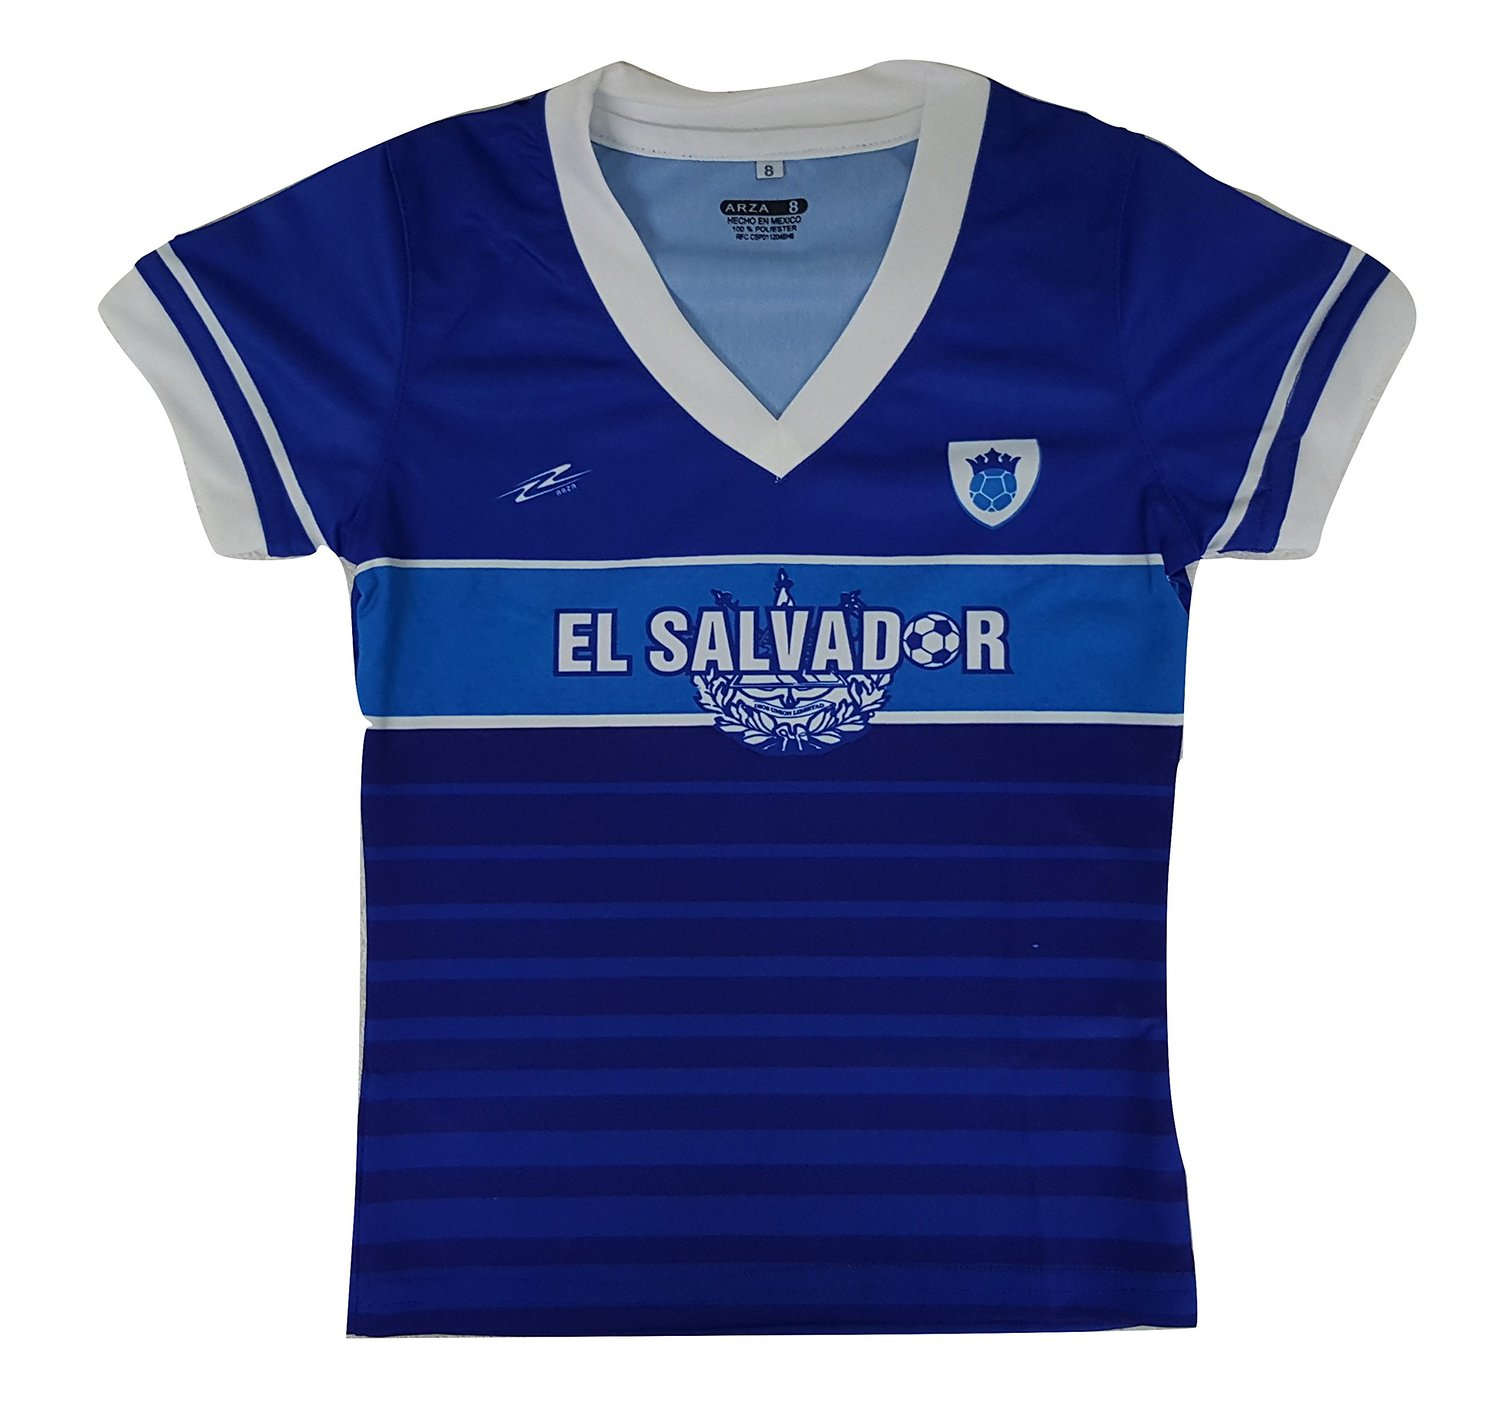 43fc2e3d7 Cheap Salvador Jersey, find Salvador Jersey deals on line at Alibaba.com